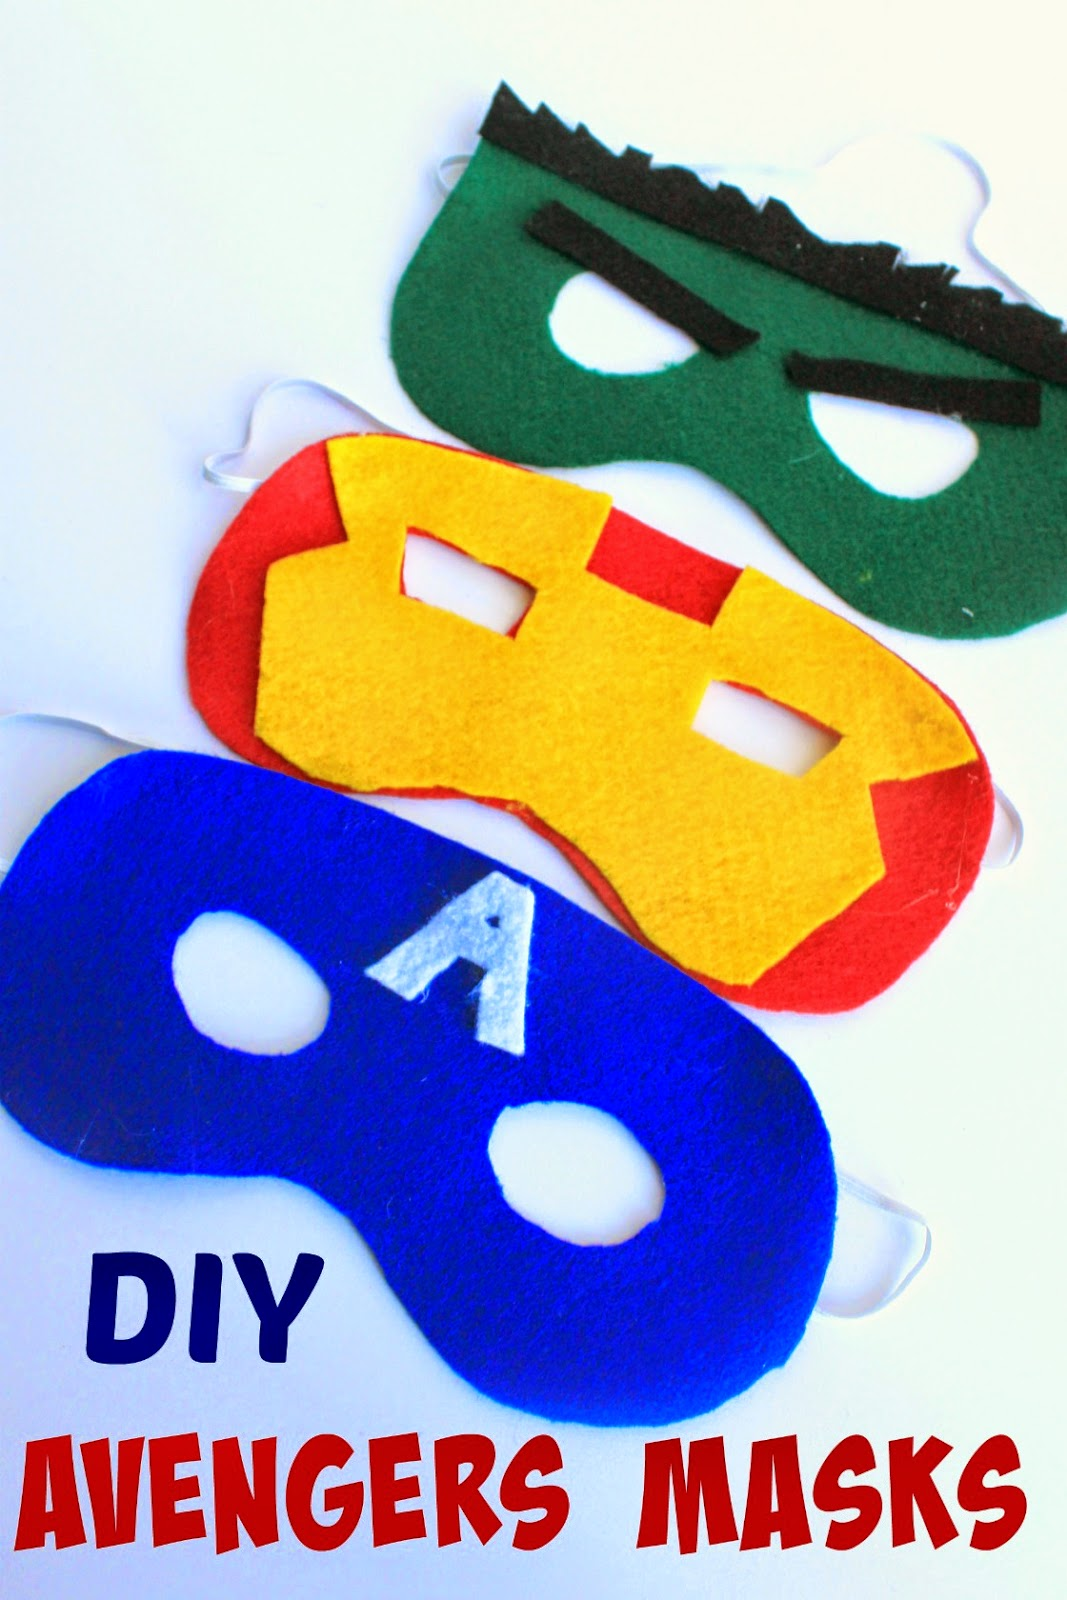 DIY Avengers Masks with patterns #AvengersUnite #ad